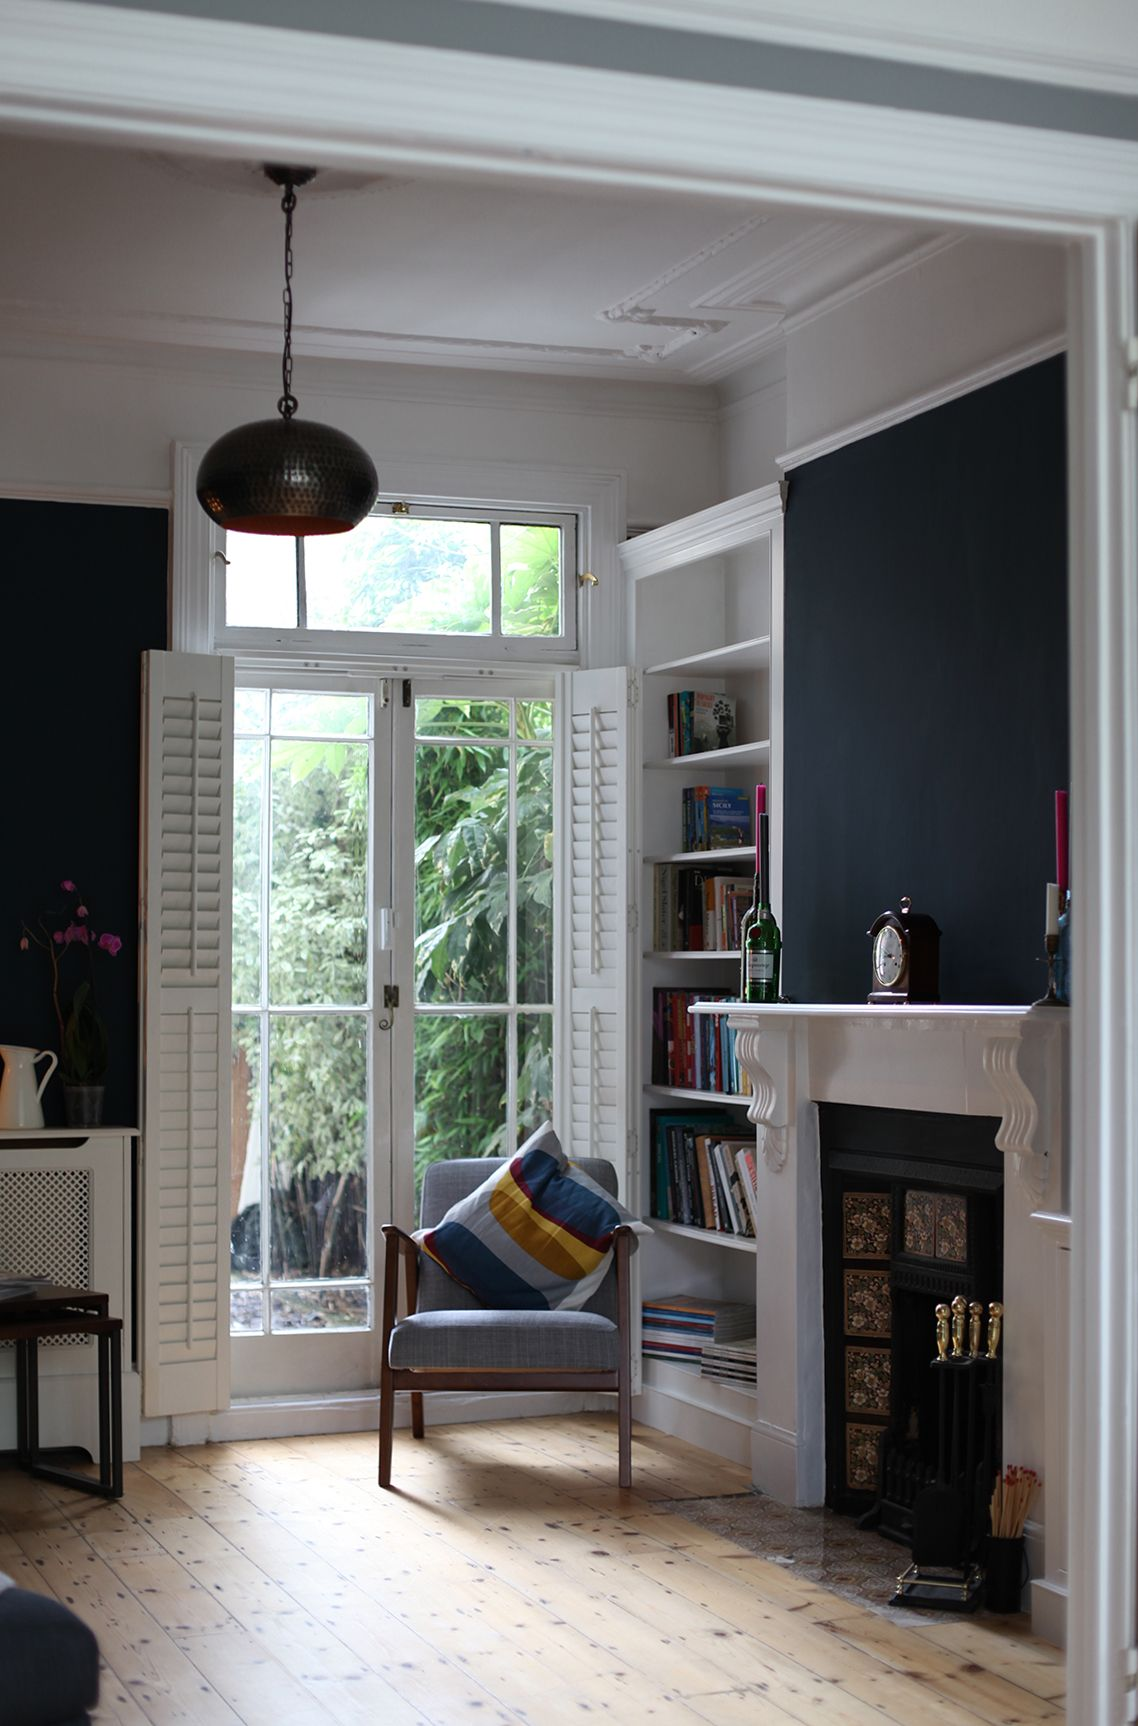 Paint Ideas For Living Room With Dark Furniture How Do I Decorate My A Red Couch Farrow & Ball Hague Blue No. 30 Estate Emulsion This ...